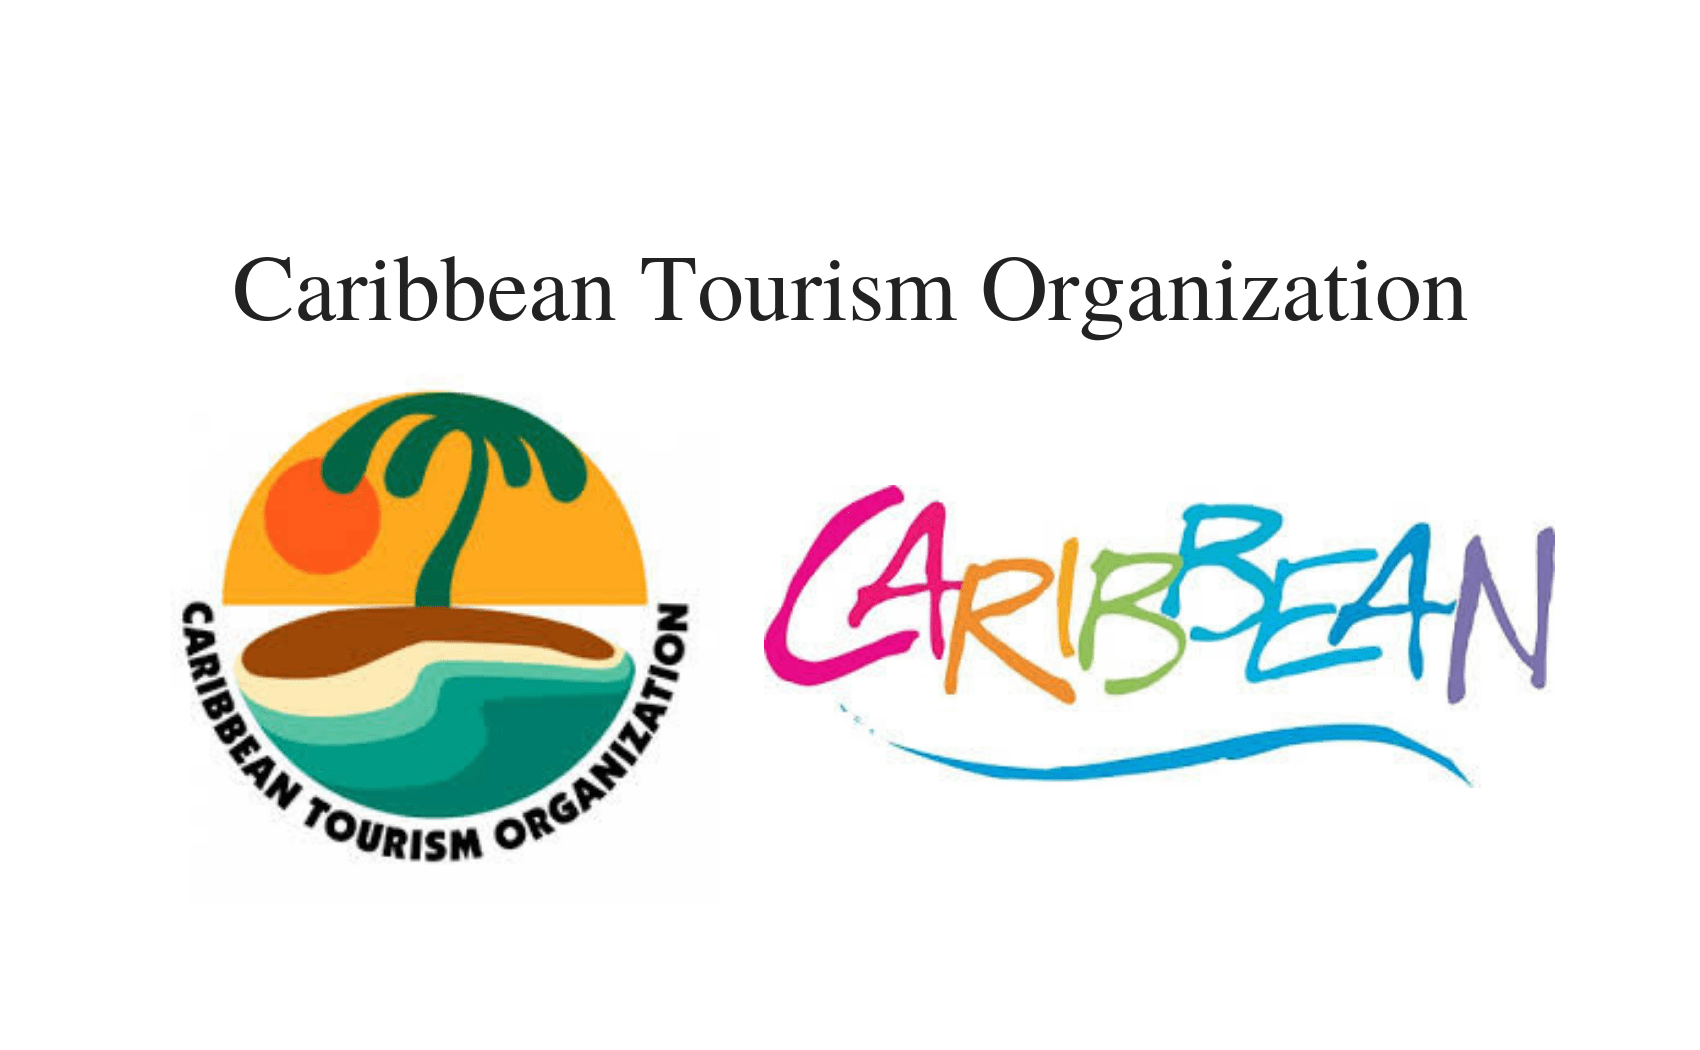 CTO projects tourism growth for the region